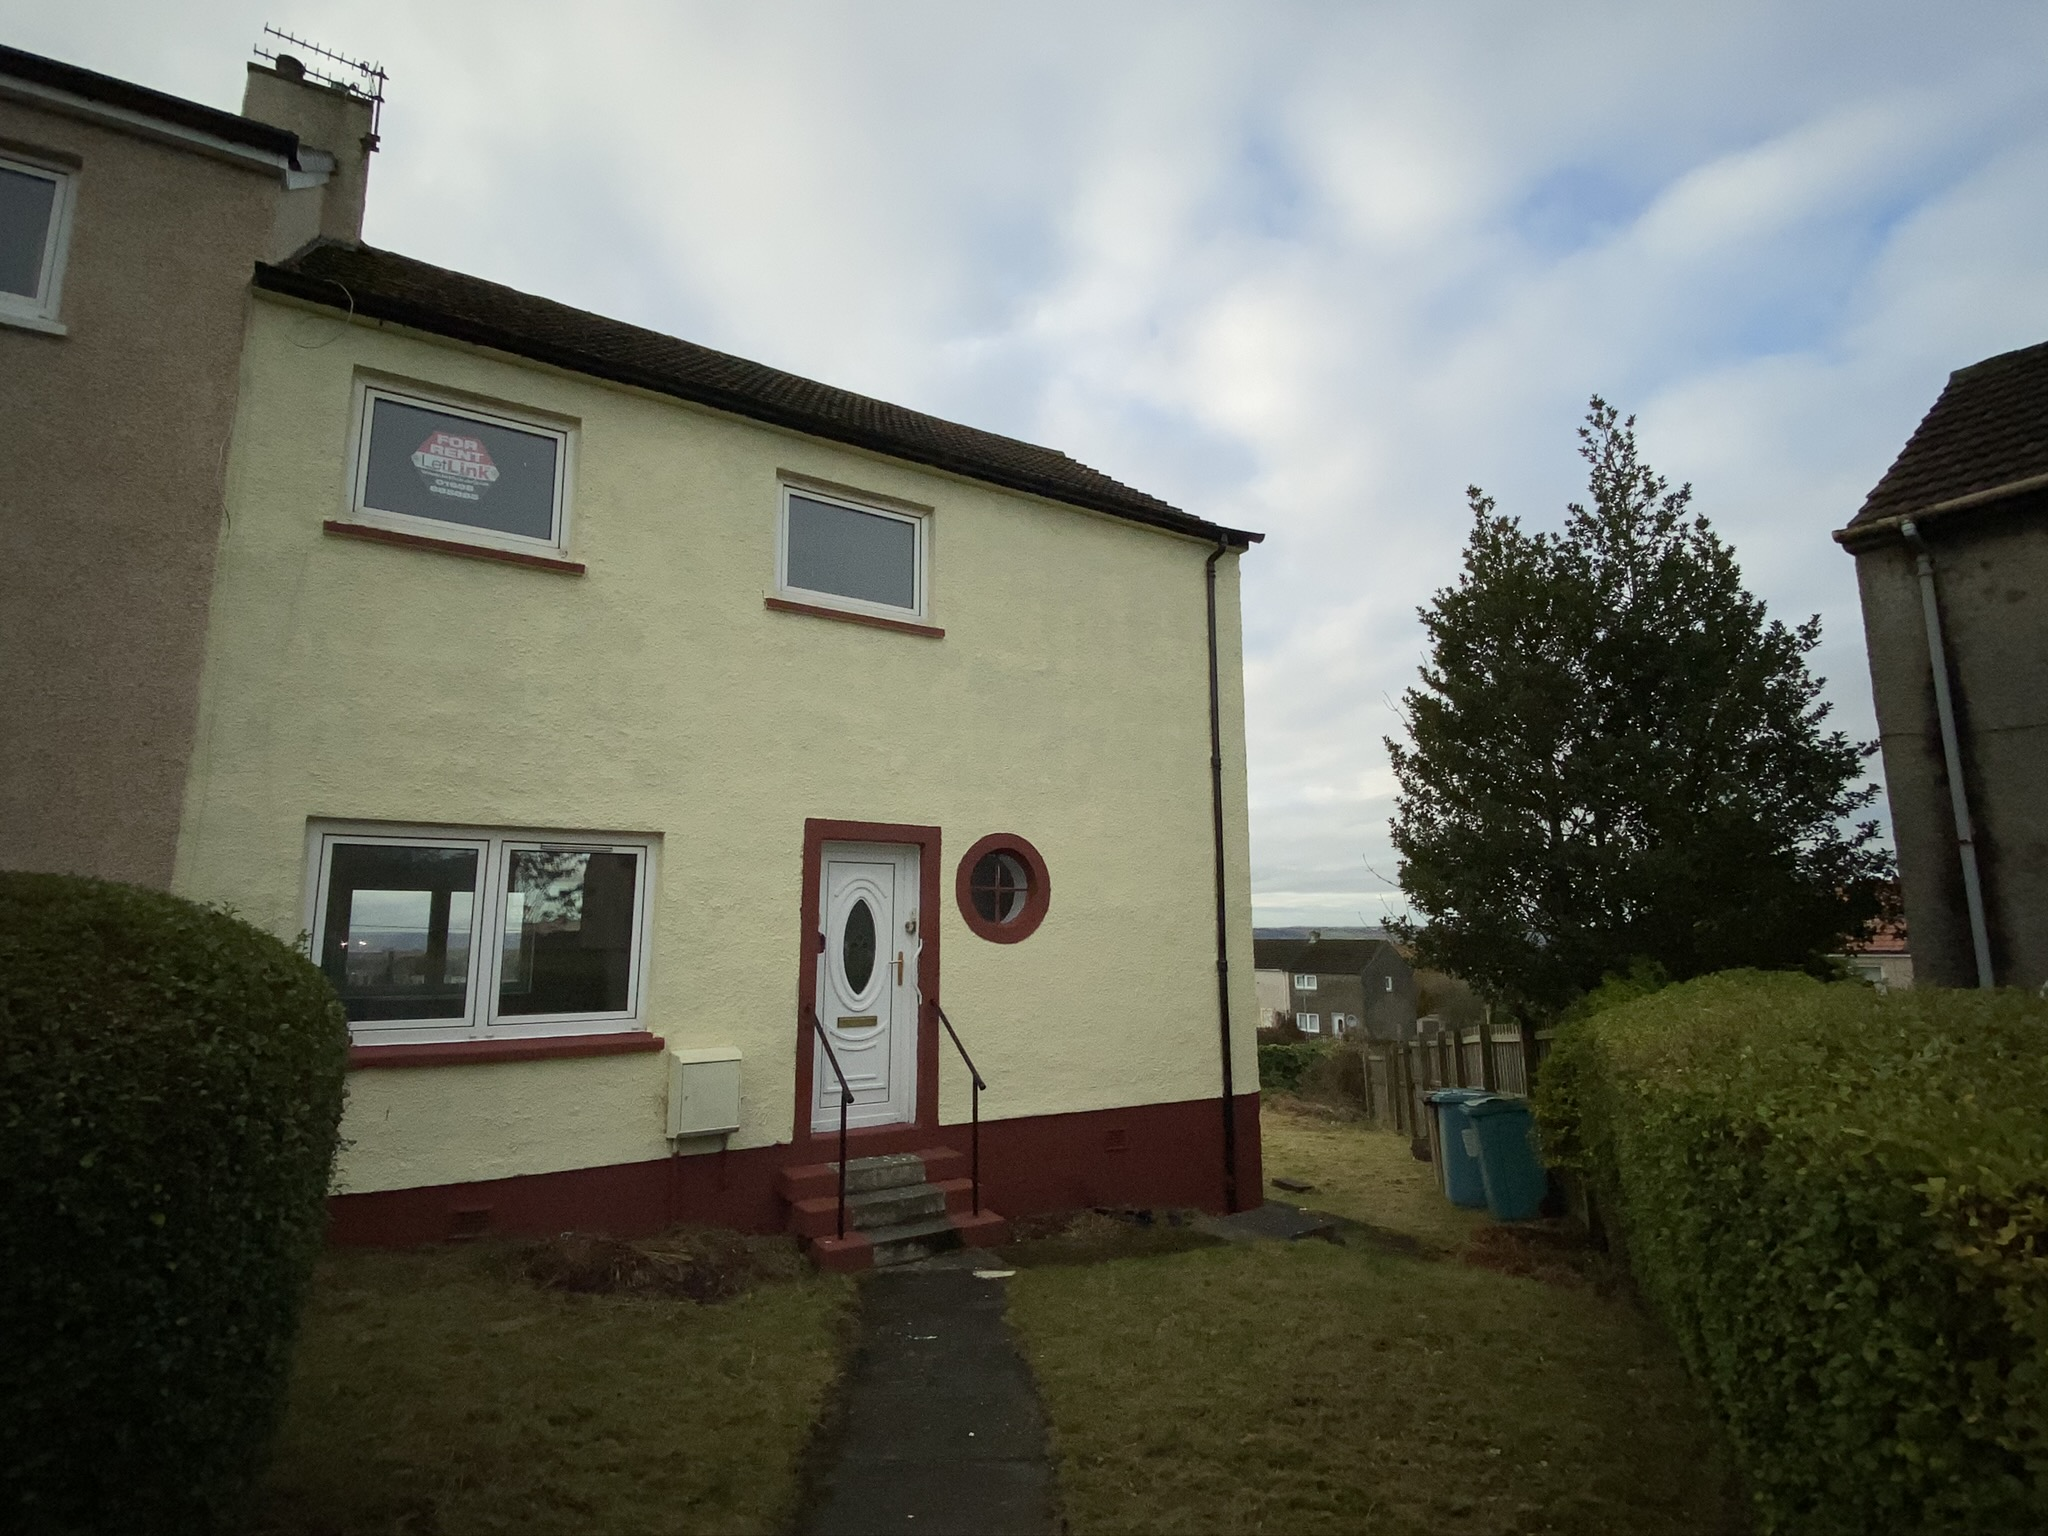 Sharp Ave, Coatbridge – 3 Bedroom semi detached house for let